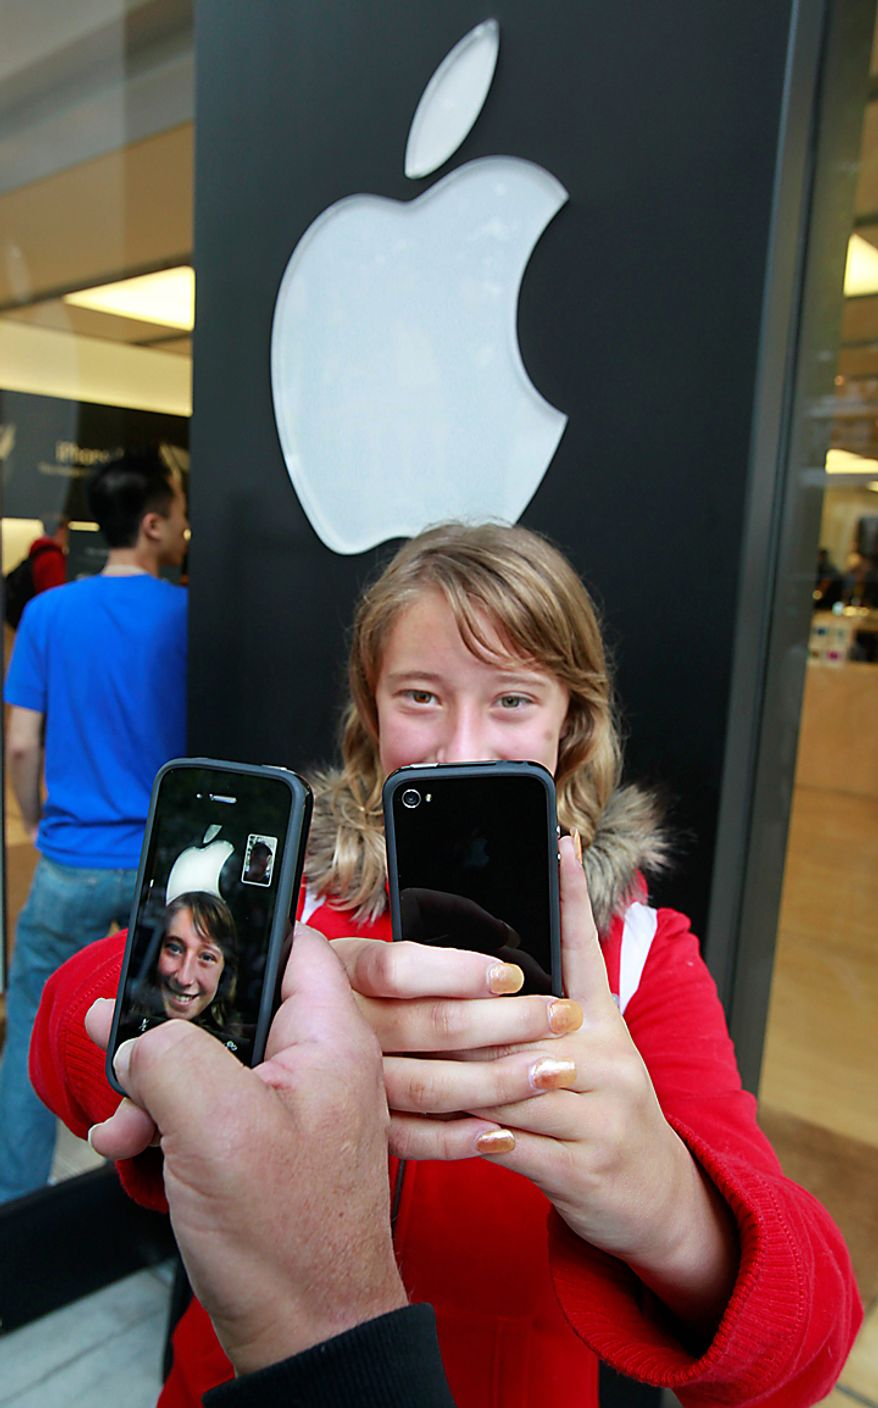 Emilie Weideman and her father, Marc Weideman, of Fremont, Calif., uses the new Apple iPhone 4 program FaceTime after purchasing the new device. (AP Photo/Paul Sakuma)